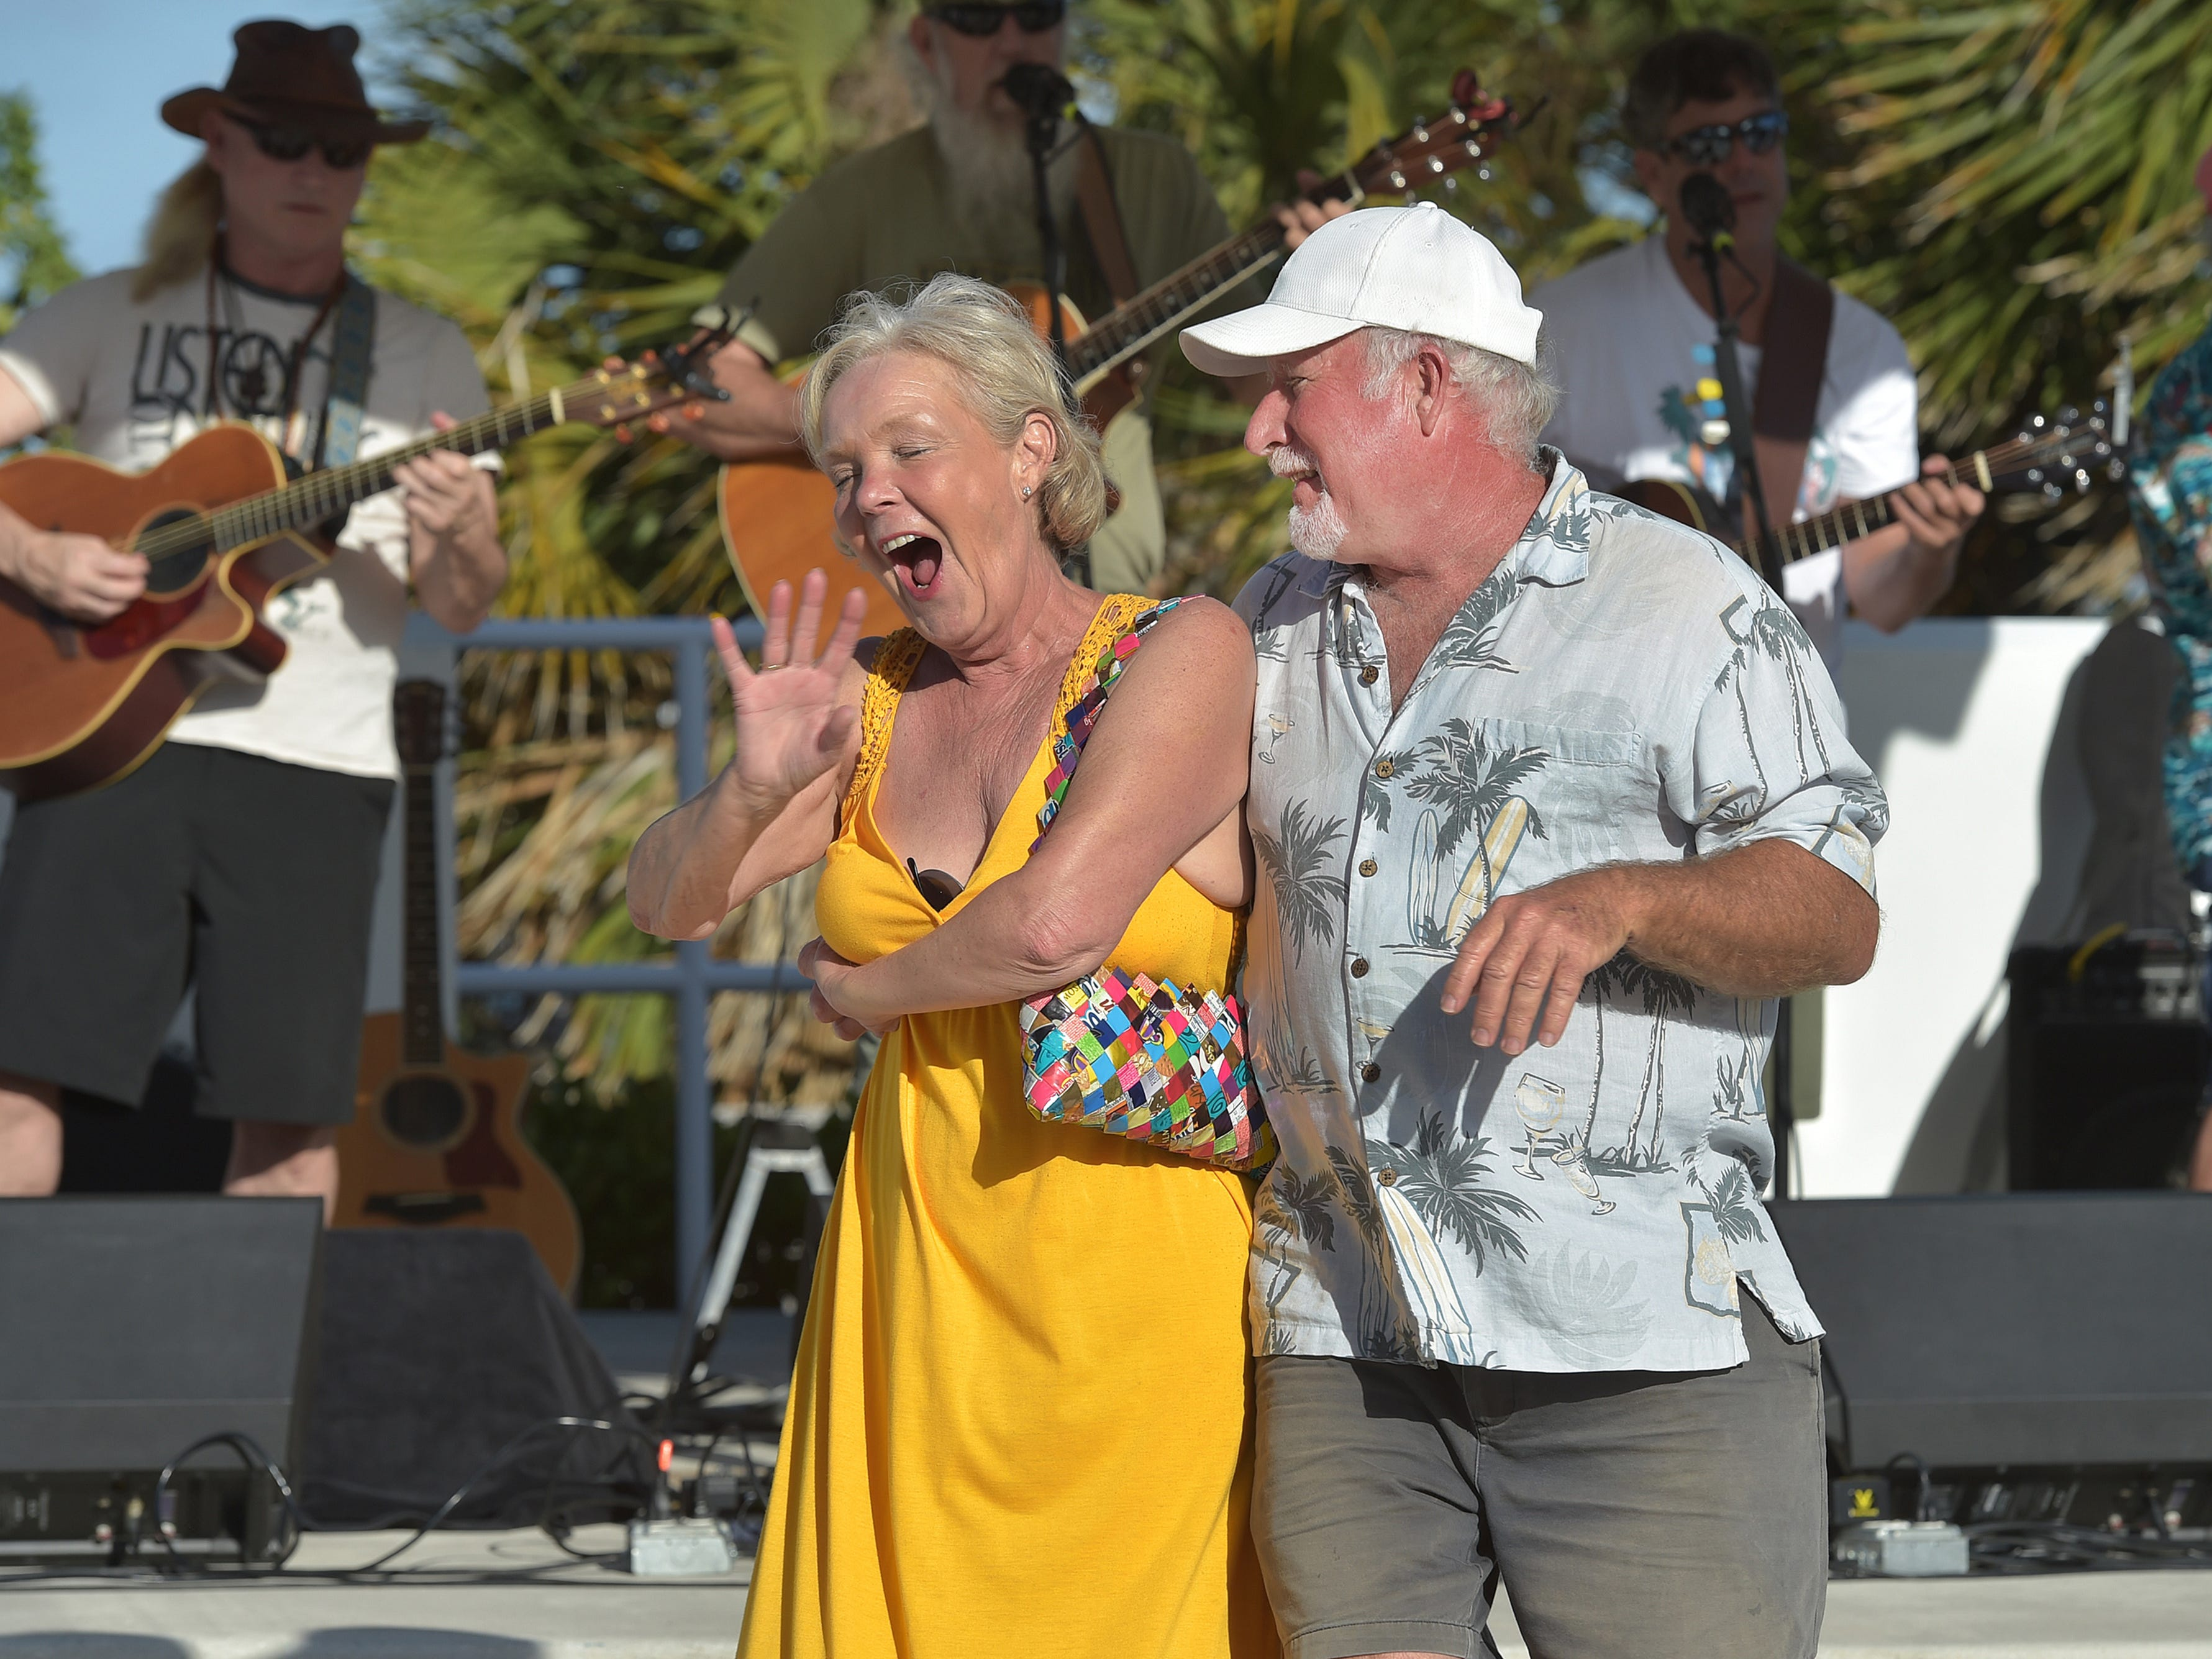 """It's such a joy, we live in one of the most beautiful places in the world,"" said Candy Darr (left), of Jensen Beach, while spinning to the music of the String Assassins, with Jon Plaster (right), of Stuart, during the Martin County Parks and Recreation's Mansion Concert Series at on the stage at the Mansion at Tuckahoe, next to Riverside Park on Sunday, Feb. 10, 2019 in Jensen Beach. ""Everyone should love to dance, because it's fun."" Darr said. Hundreds of music fans filled the grounds to enjoy the music, food beverages, and kids activities. The next concert is Sunday, March 3, 2019  at 3 p.m. to 6 p.m. with the sounds of The Floridian Band."